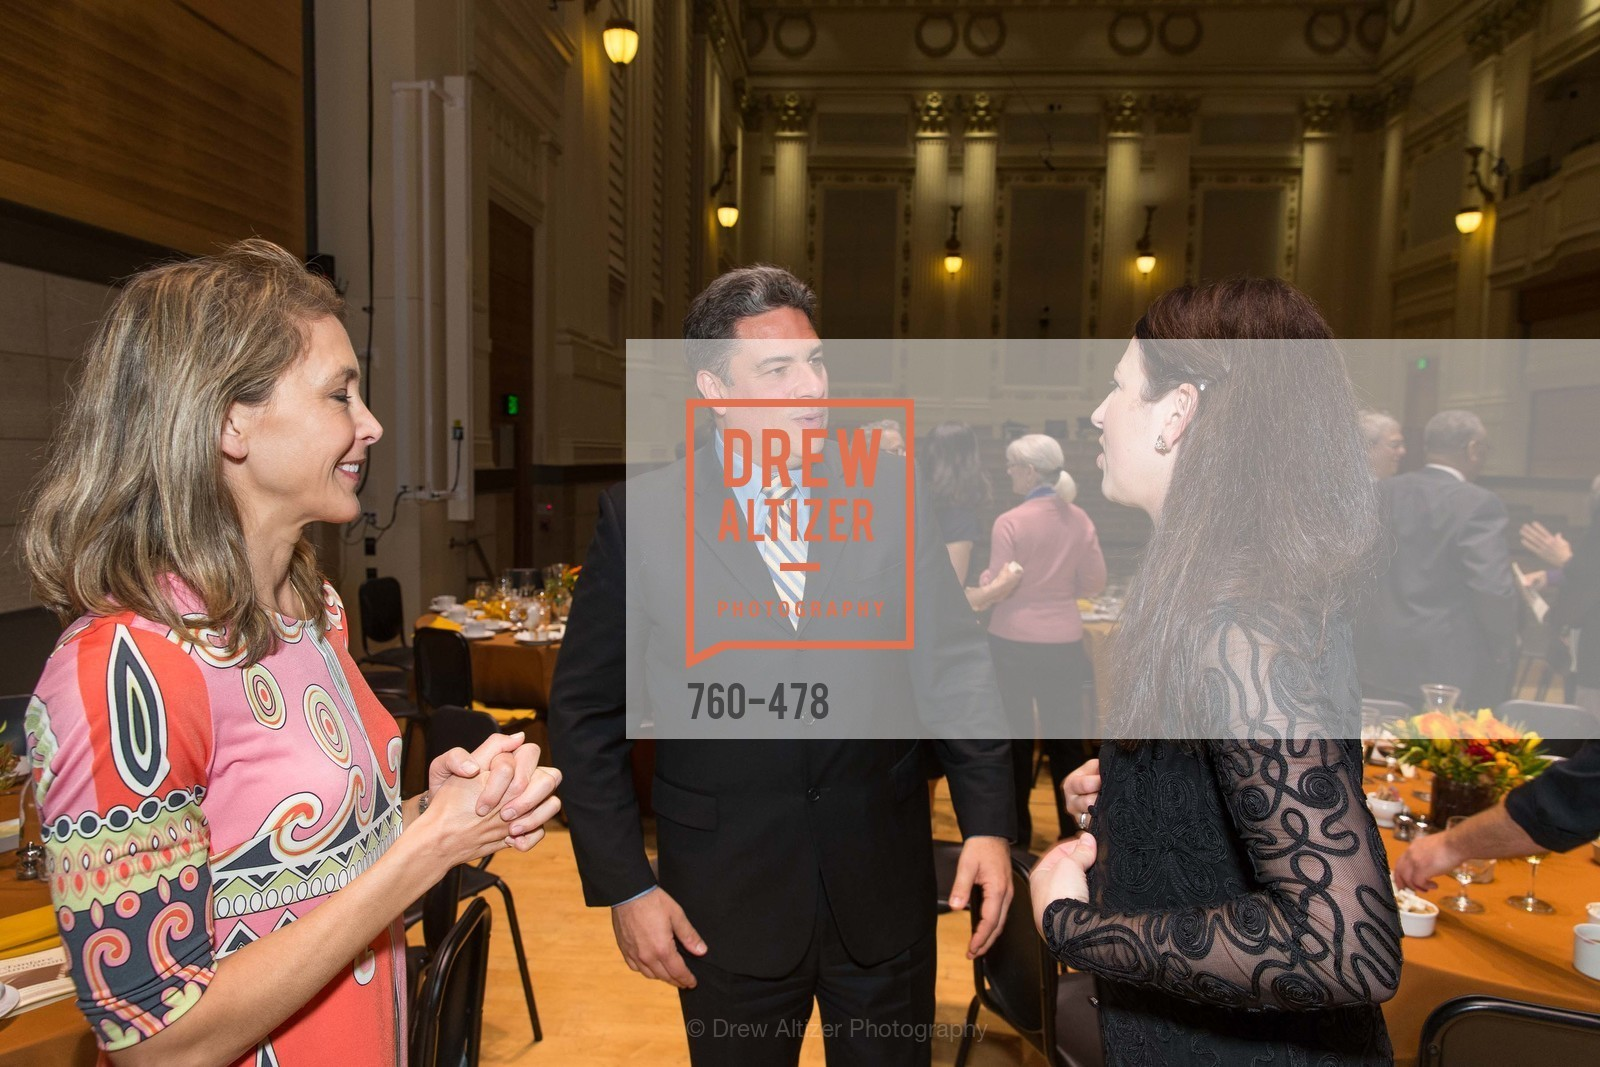 Eileen Blum-Bourgade, David Stull, Amy Schwartz Moretti, SAN FRANCISCO CONSERVATORY OF MUSIC'S 2014 Fanfare Luncheon, US. Conservatory of Music, January 24th, 2014,Drew Altizer, Drew Altizer Photography, full-service agency, private events, San Francisco photographer, photographer california